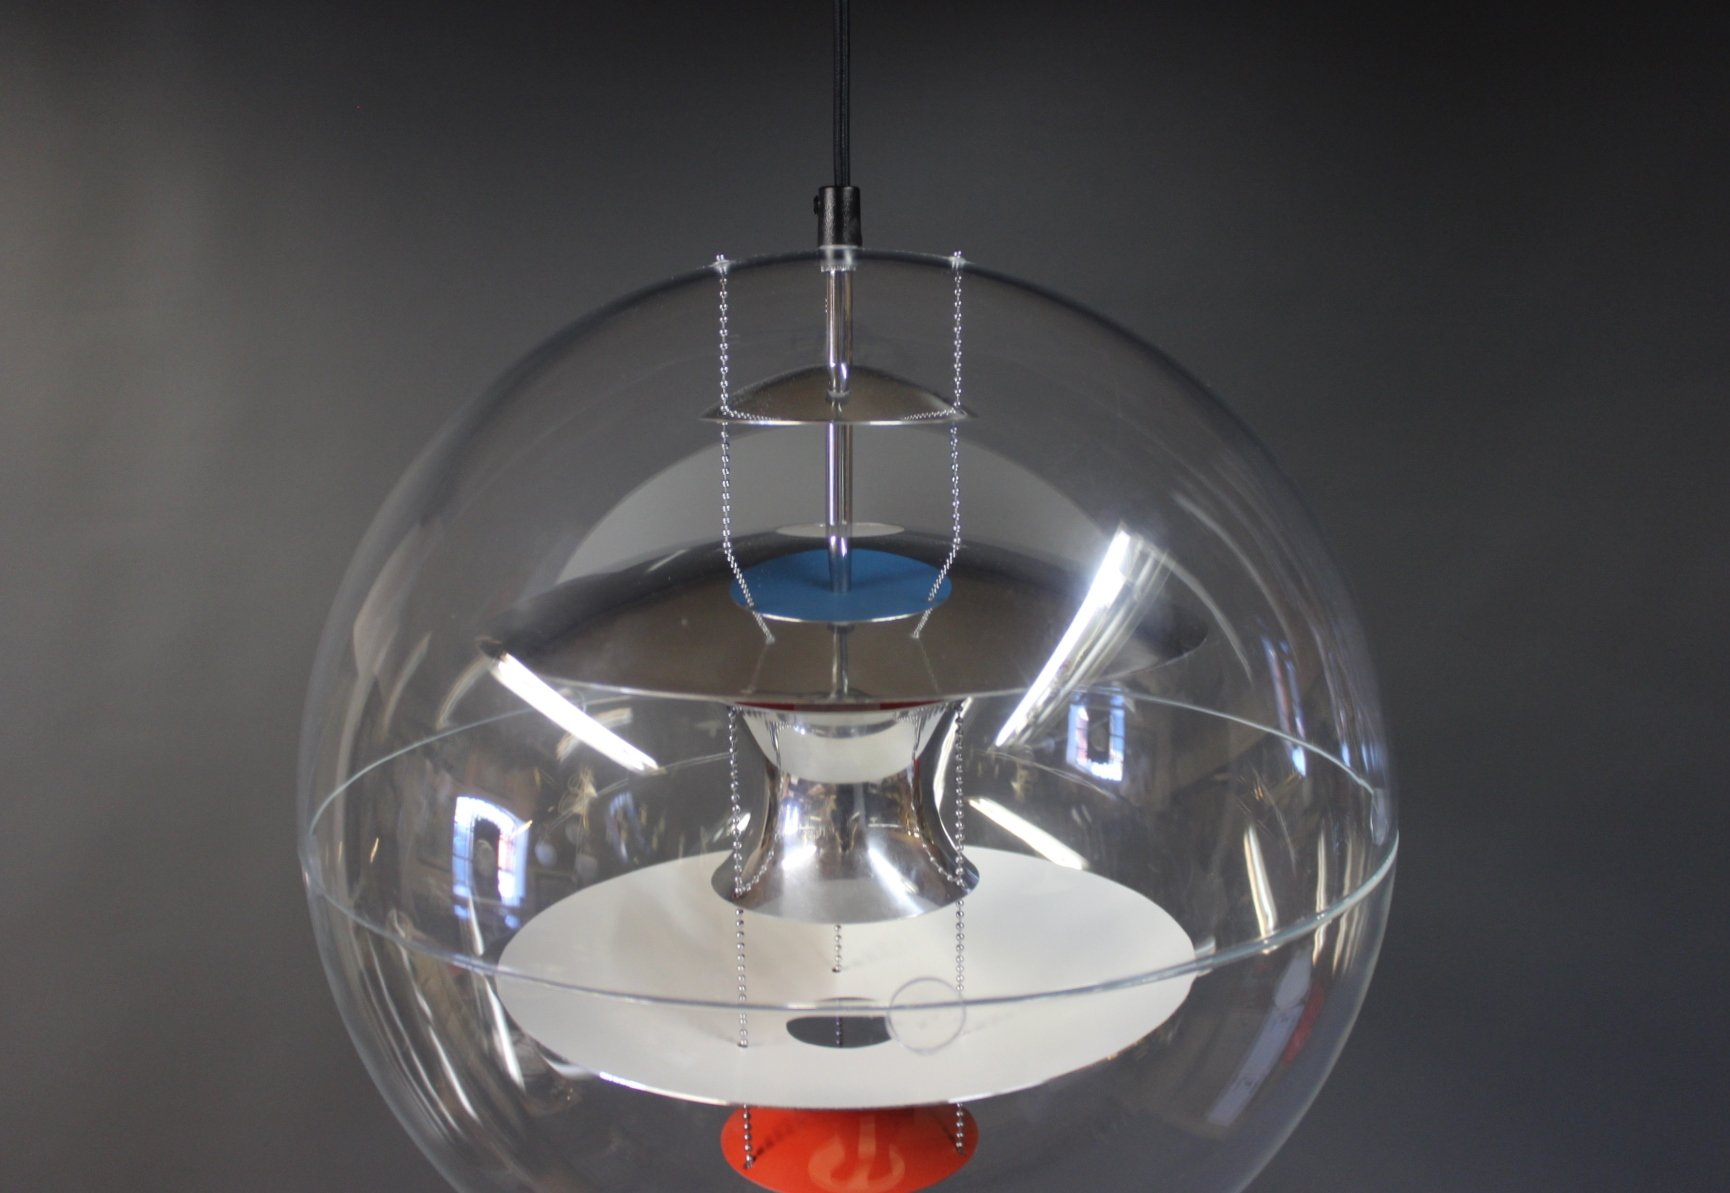 d nische globe lampe von verner panton 1969 bei pamono kaufen. Black Bedroom Furniture Sets. Home Design Ideas